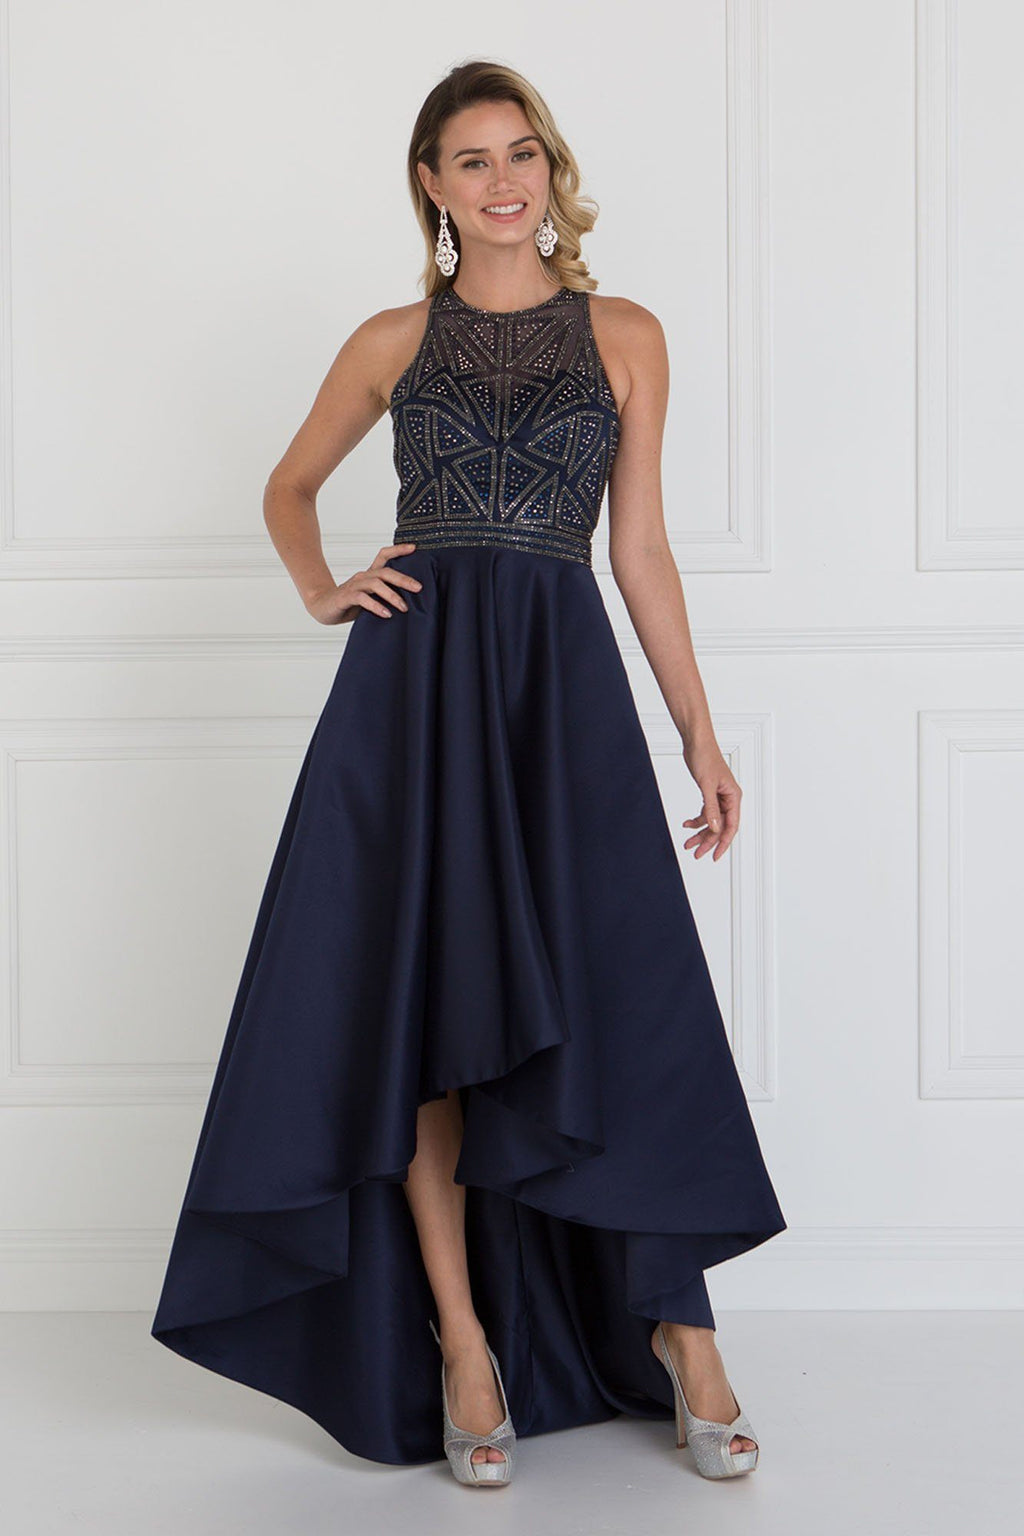 Jeweled high neck high-low prom dress GLS 1501-Simply Fab Dress